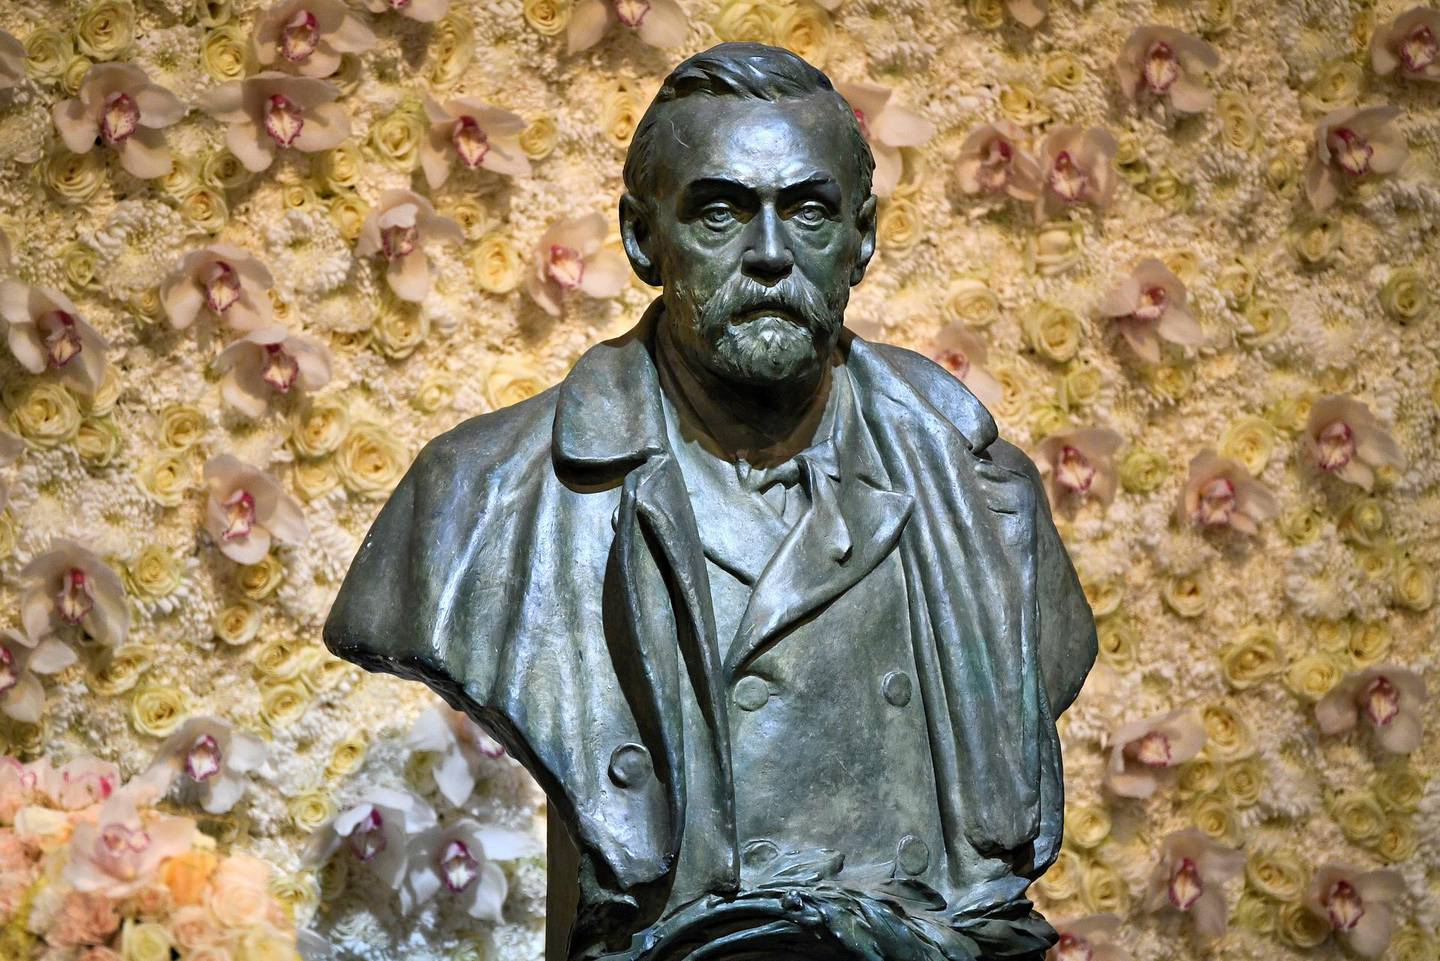 FILE PHOTO: A bronze bust of Alfred Nobel is pictured before the Nobel Prize ceremony at Stockholm Concert Hall, in Stockholm, Sweden December 10, 2019. TT News Agency/Claudio Bresciani via REUTERS   ATTENTION EDITORS - THIS IMAGE WAS PROVIDED BY A THIRD PARTY. SWEDEN OUT. NO COMMERCIAL OR EDITORIAL SALES IN SWEDEN./File Photo